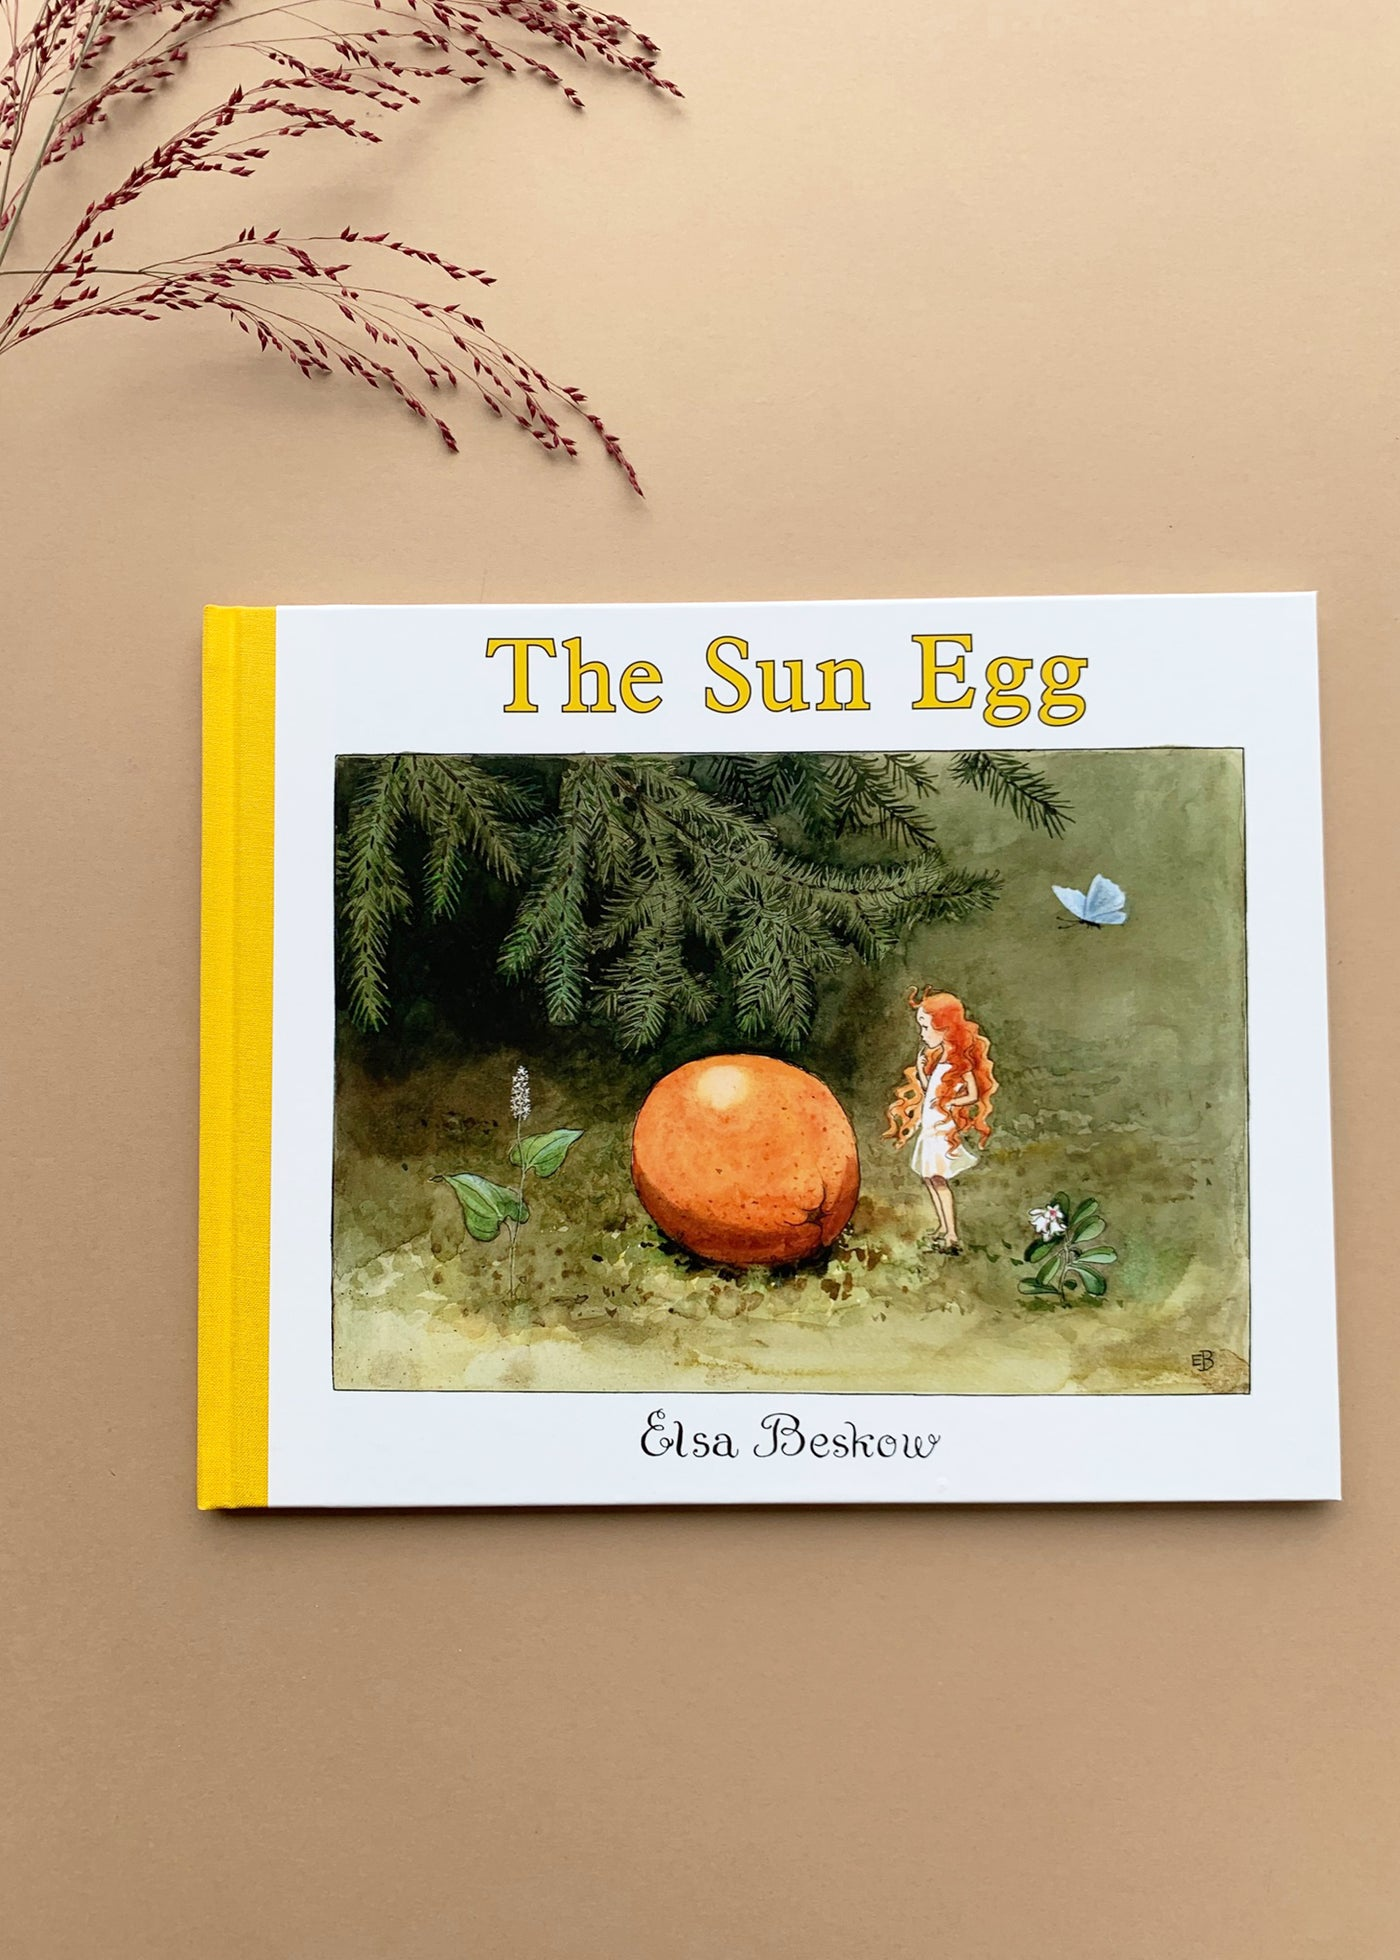 The Sun Egg (Hardcover) by Elsa Beskow